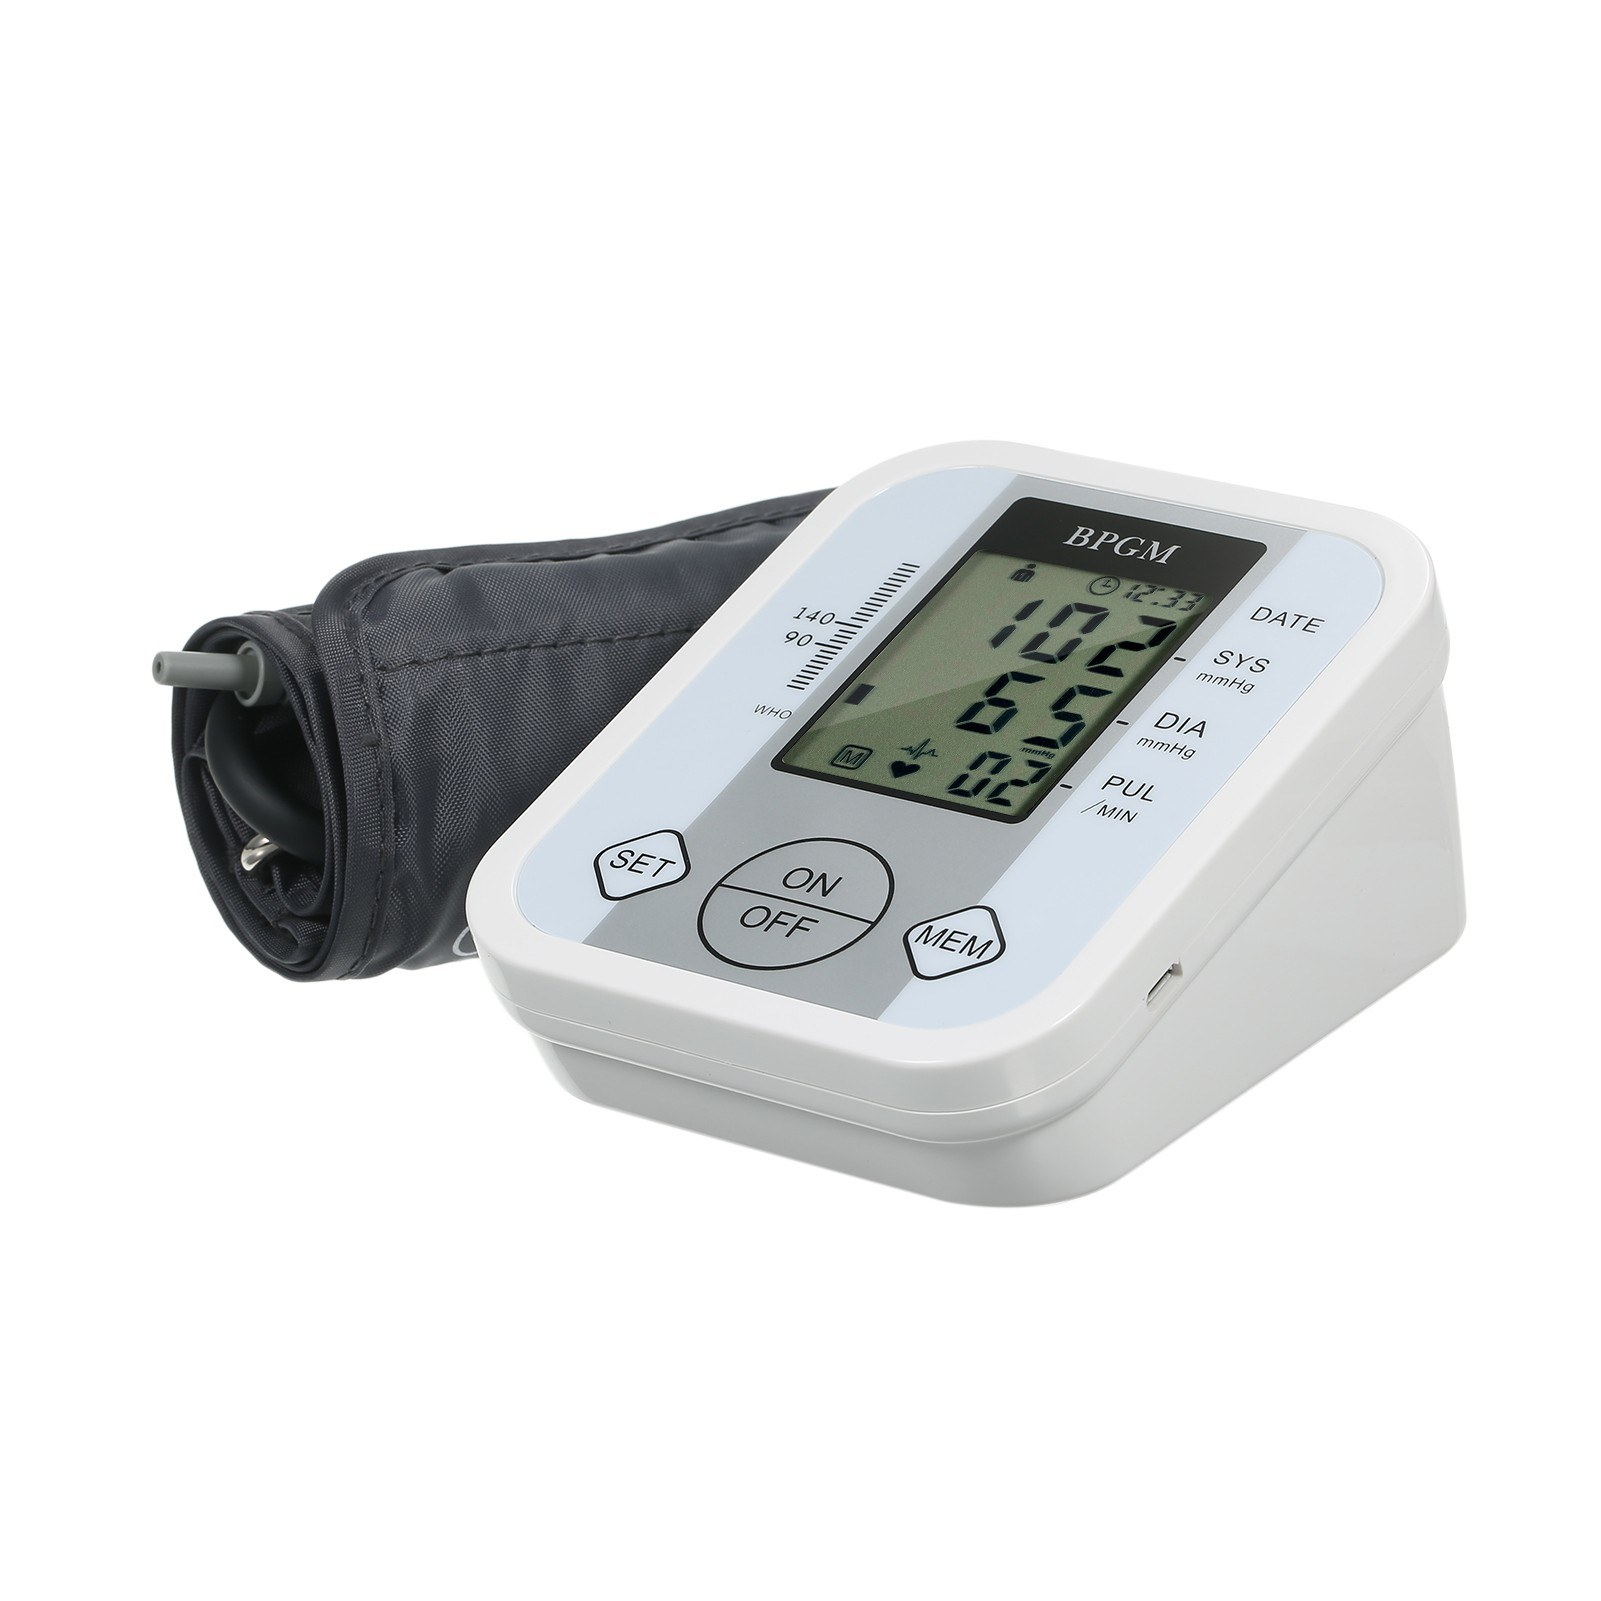 tomtop.com - 59% OFF Electronic Blood Pressure Monitor, Free Shipping $17.99